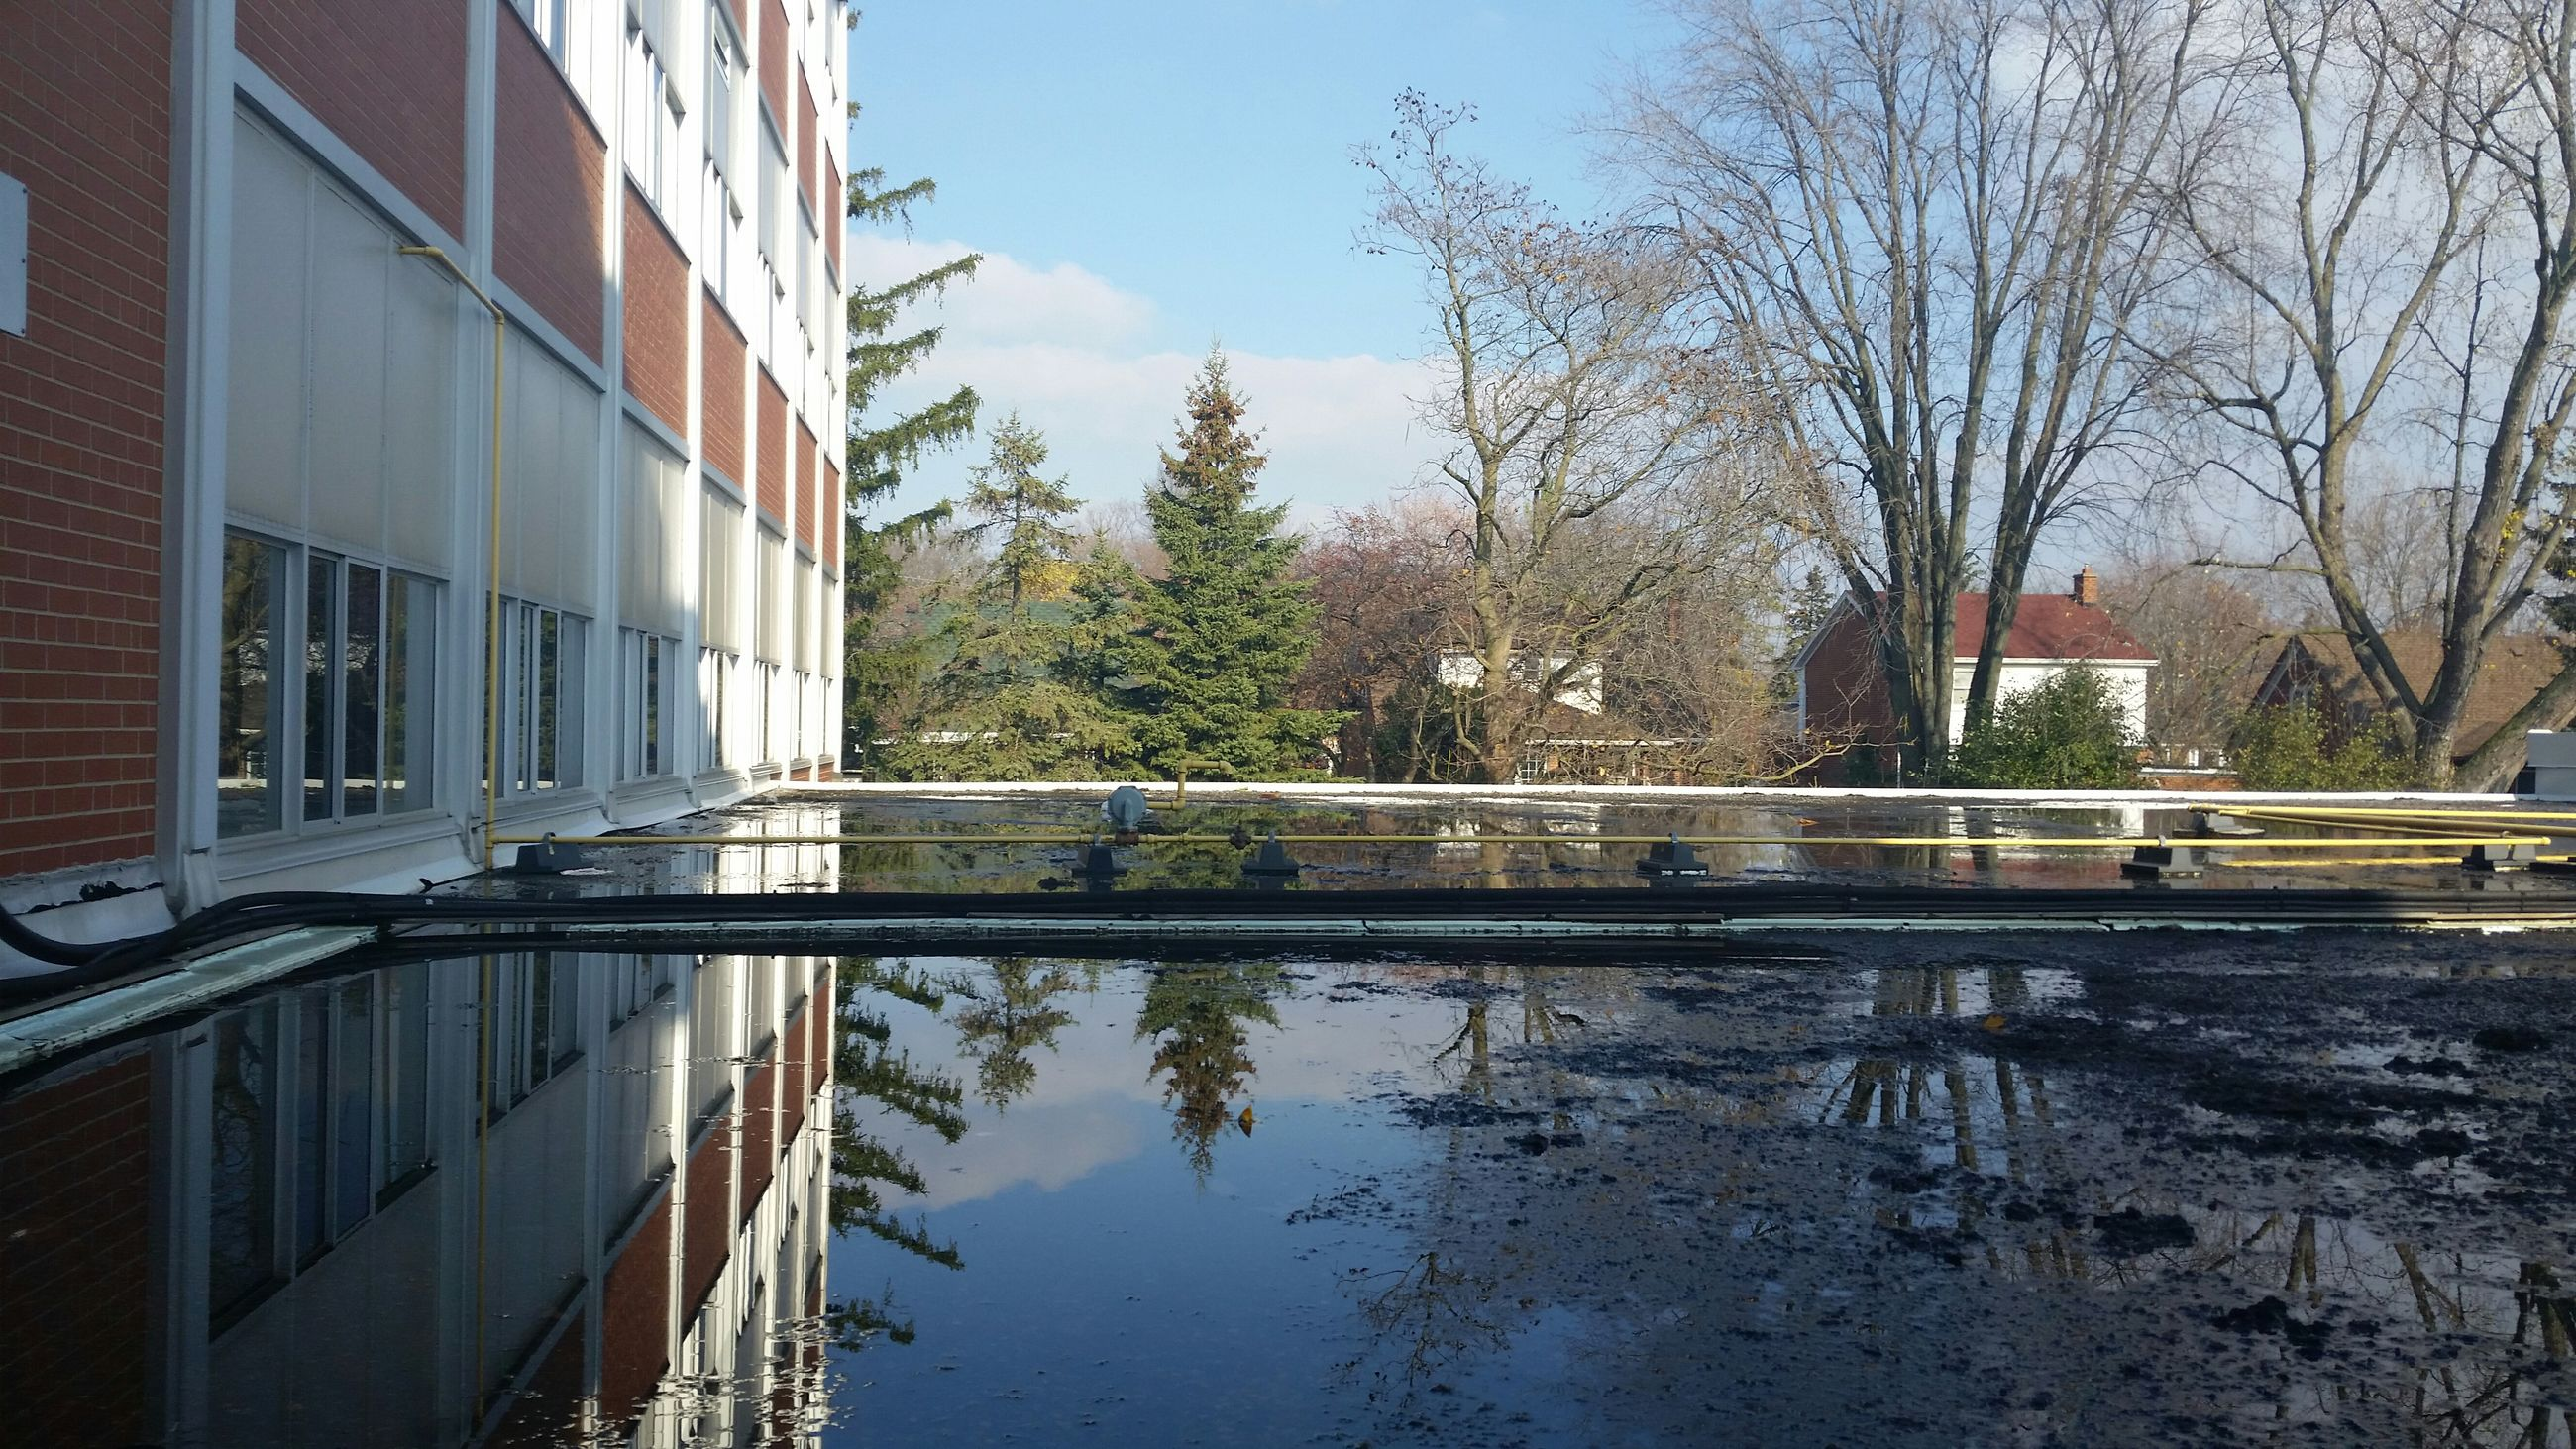 reflection, architecture, built structure, water, tree, building exterior, canal, bare tree, waterfront, sky, connection, river, day, standing water, building, residential building, bridge - man made structure, outdoors, railing, no people